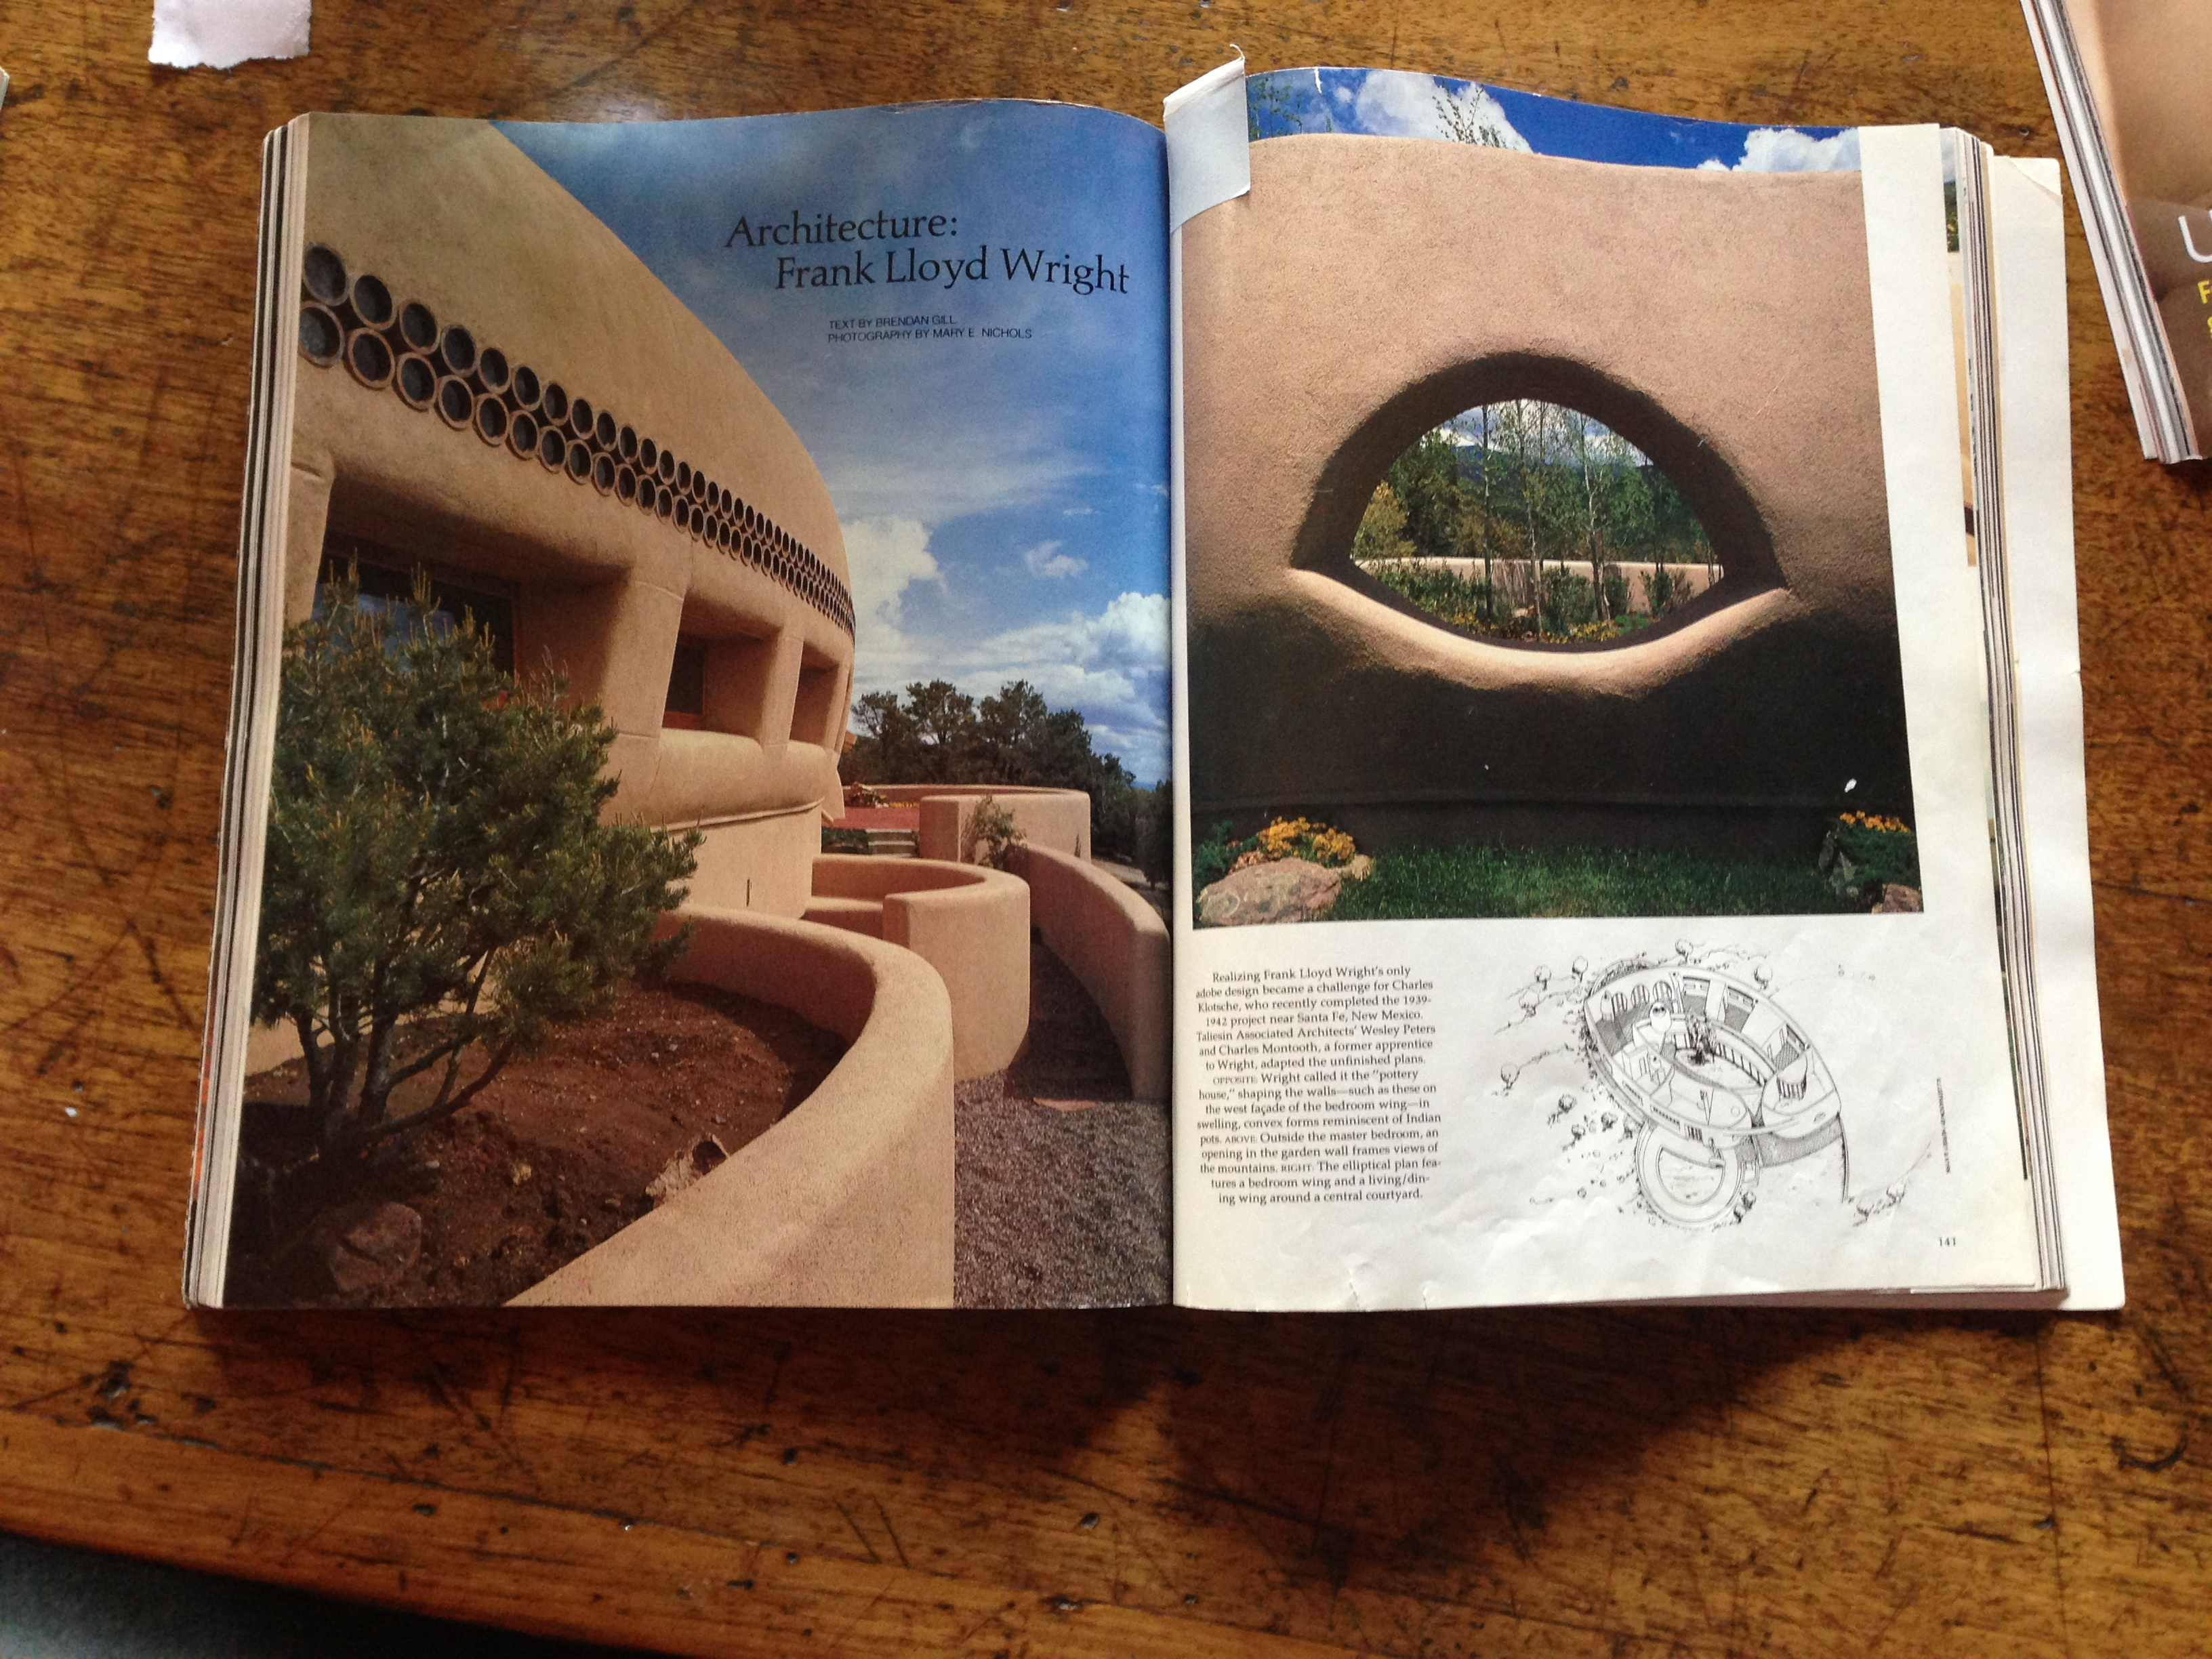 Frank Lloyd Wright: One of the greatest, and most controversial